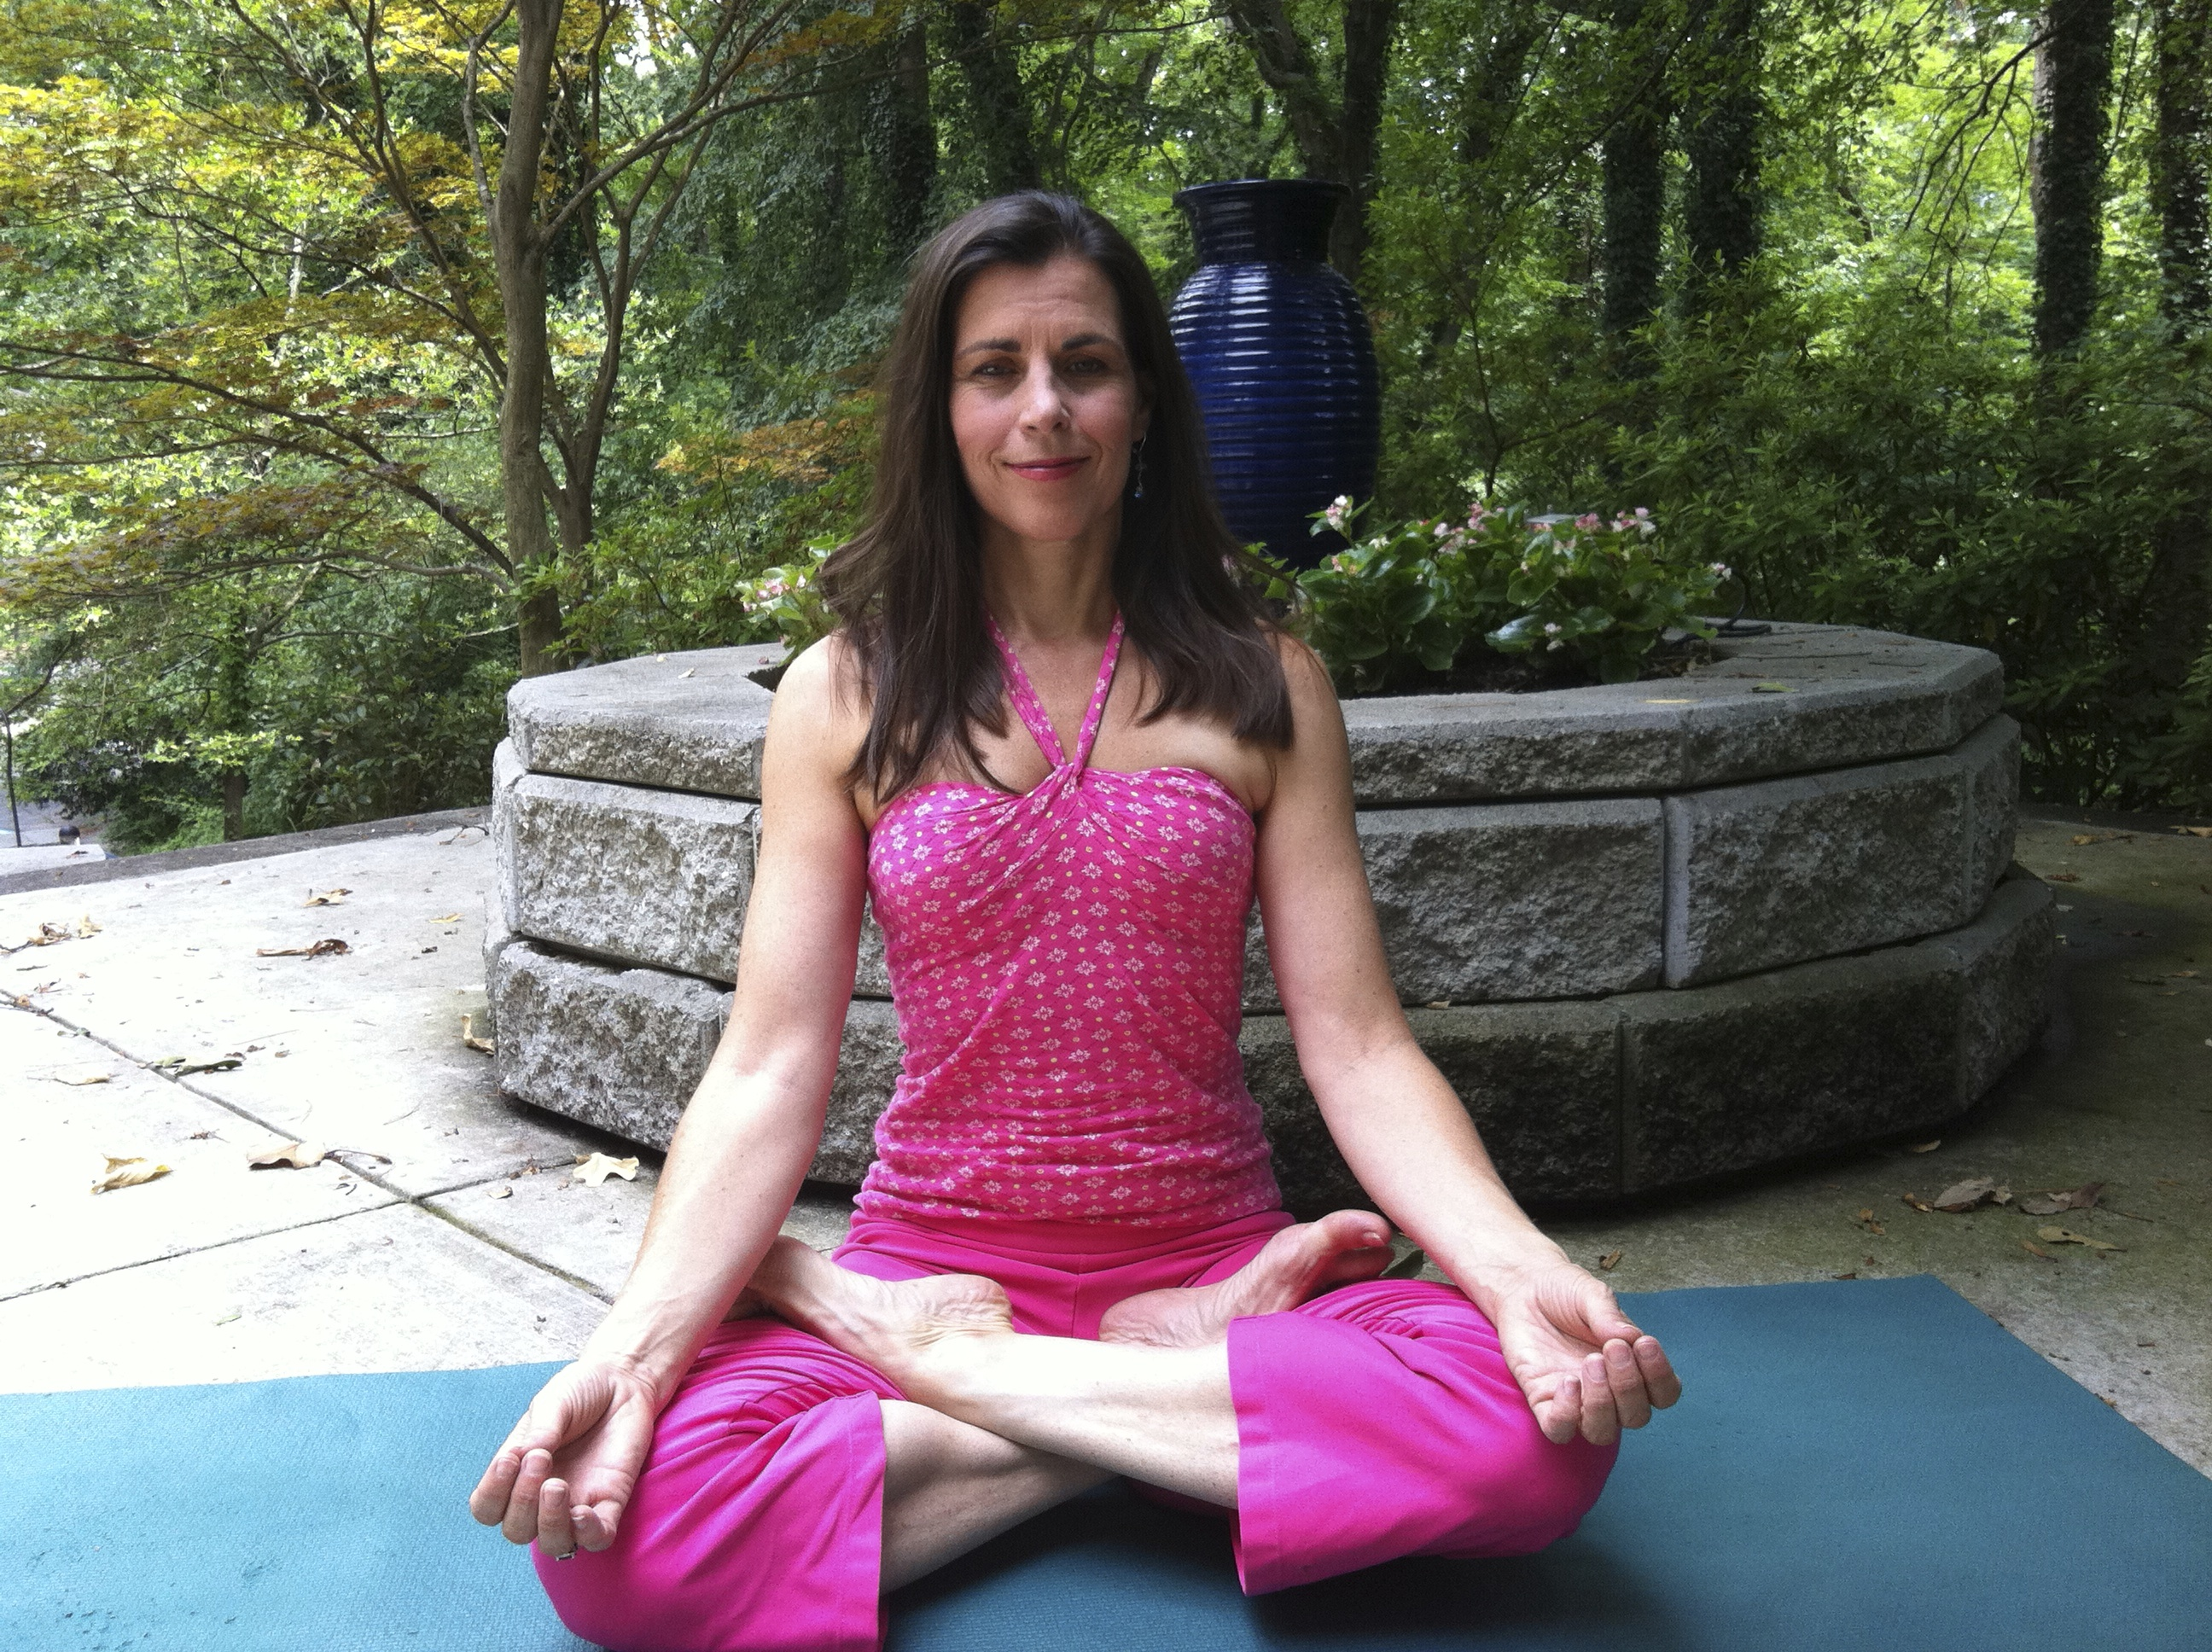 The Multitasking Yogini